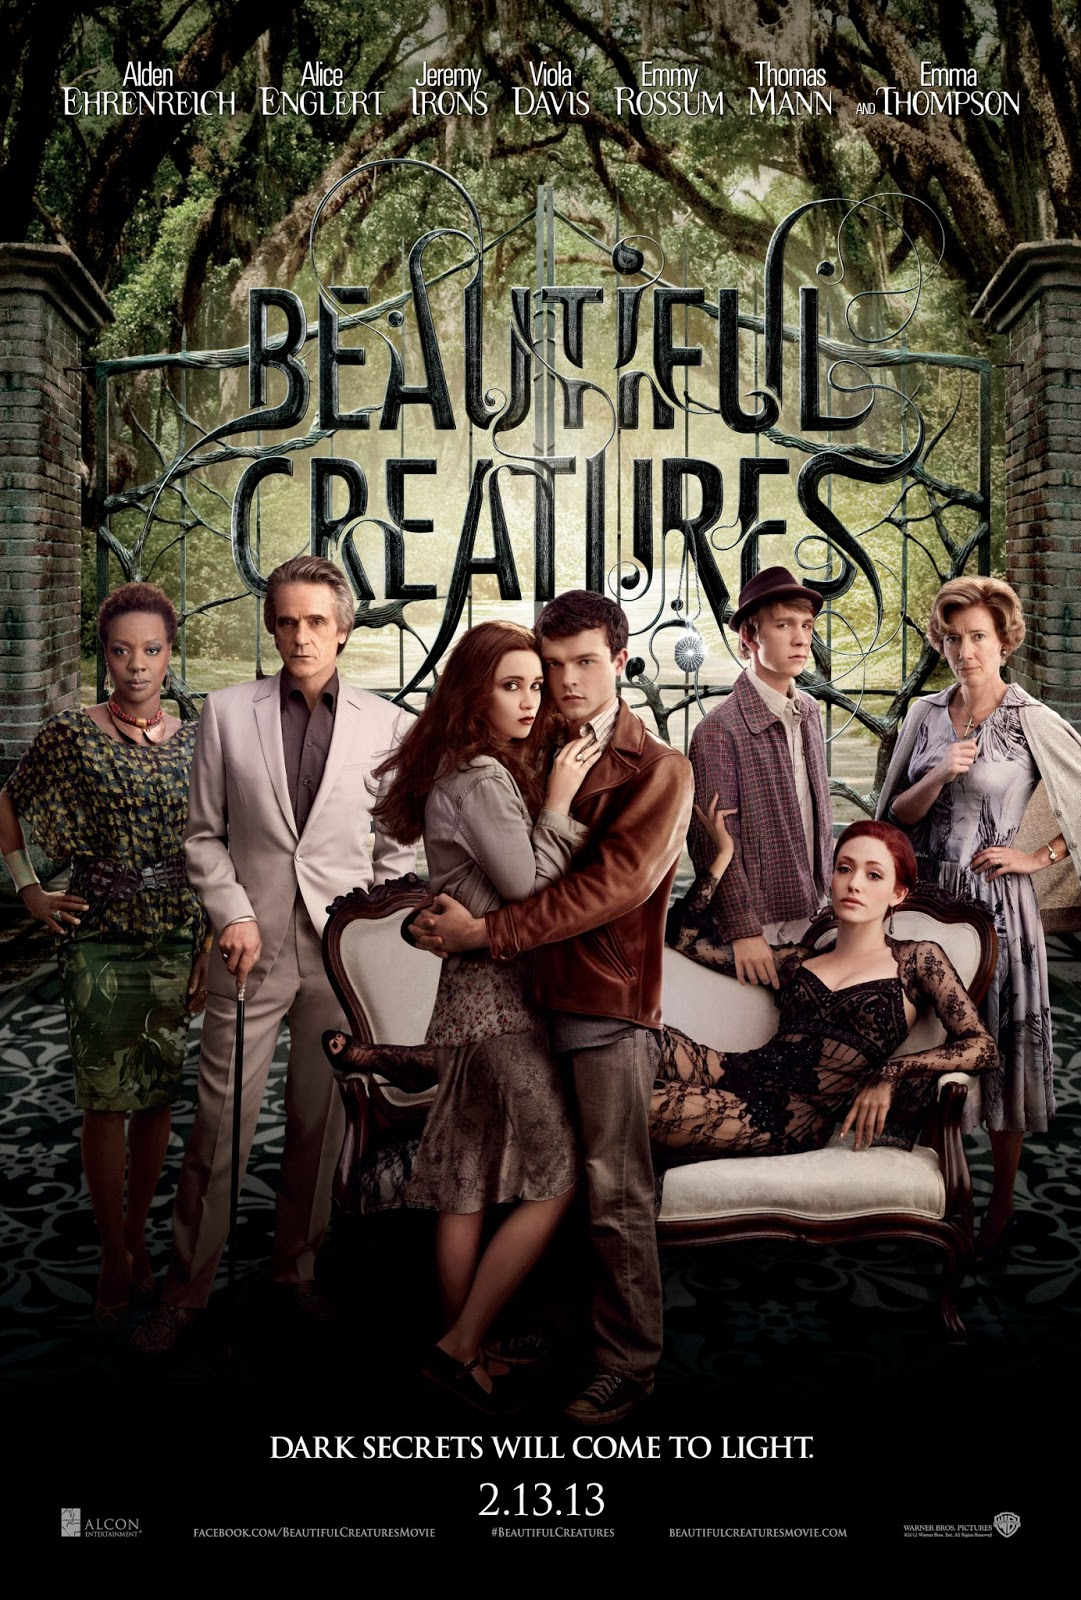 http://1.bp.blogspot.com/-vwpl-cd7IBo/URpVkMJD88I/AAAAAAAAPdM/SucSnUa915Q/s1600/NEW-POSTER-beautiful-creatures-movie-32778385-1384-2048.jpg